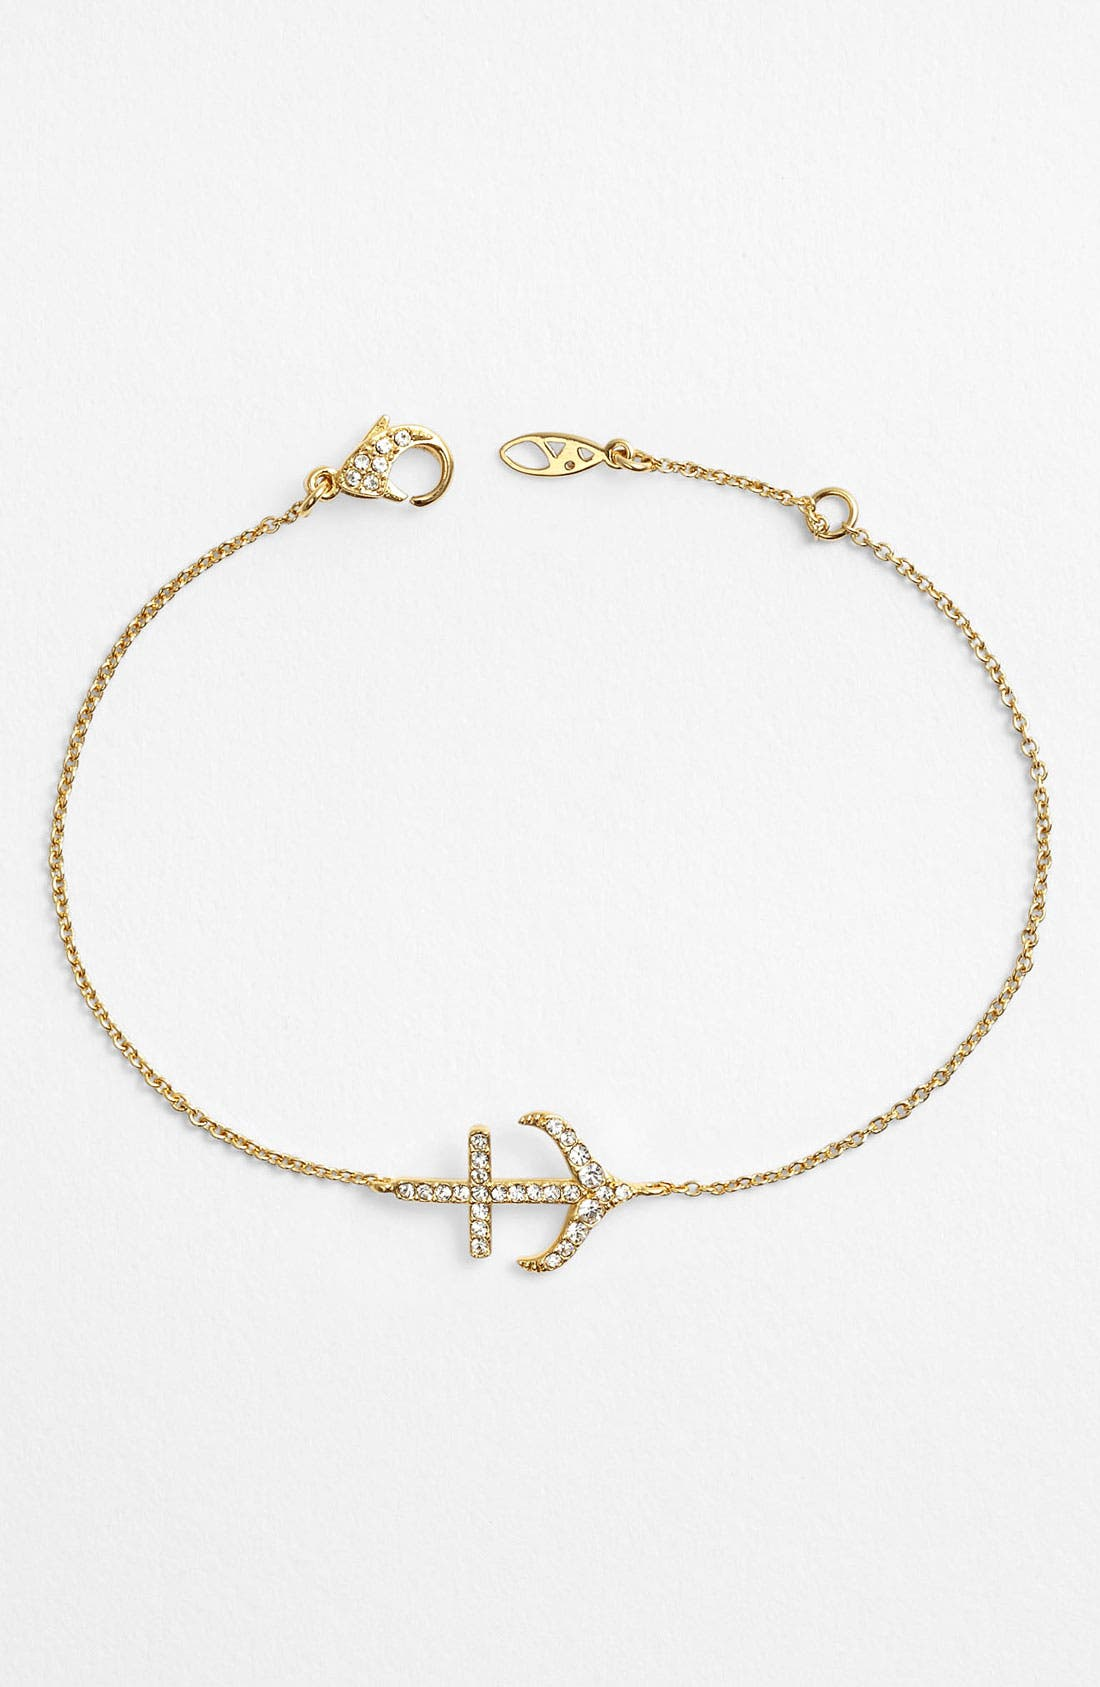 Alternate Image 1 Selected - Nadri Anchor Station Bracelet (Nordstrom Exclusive)